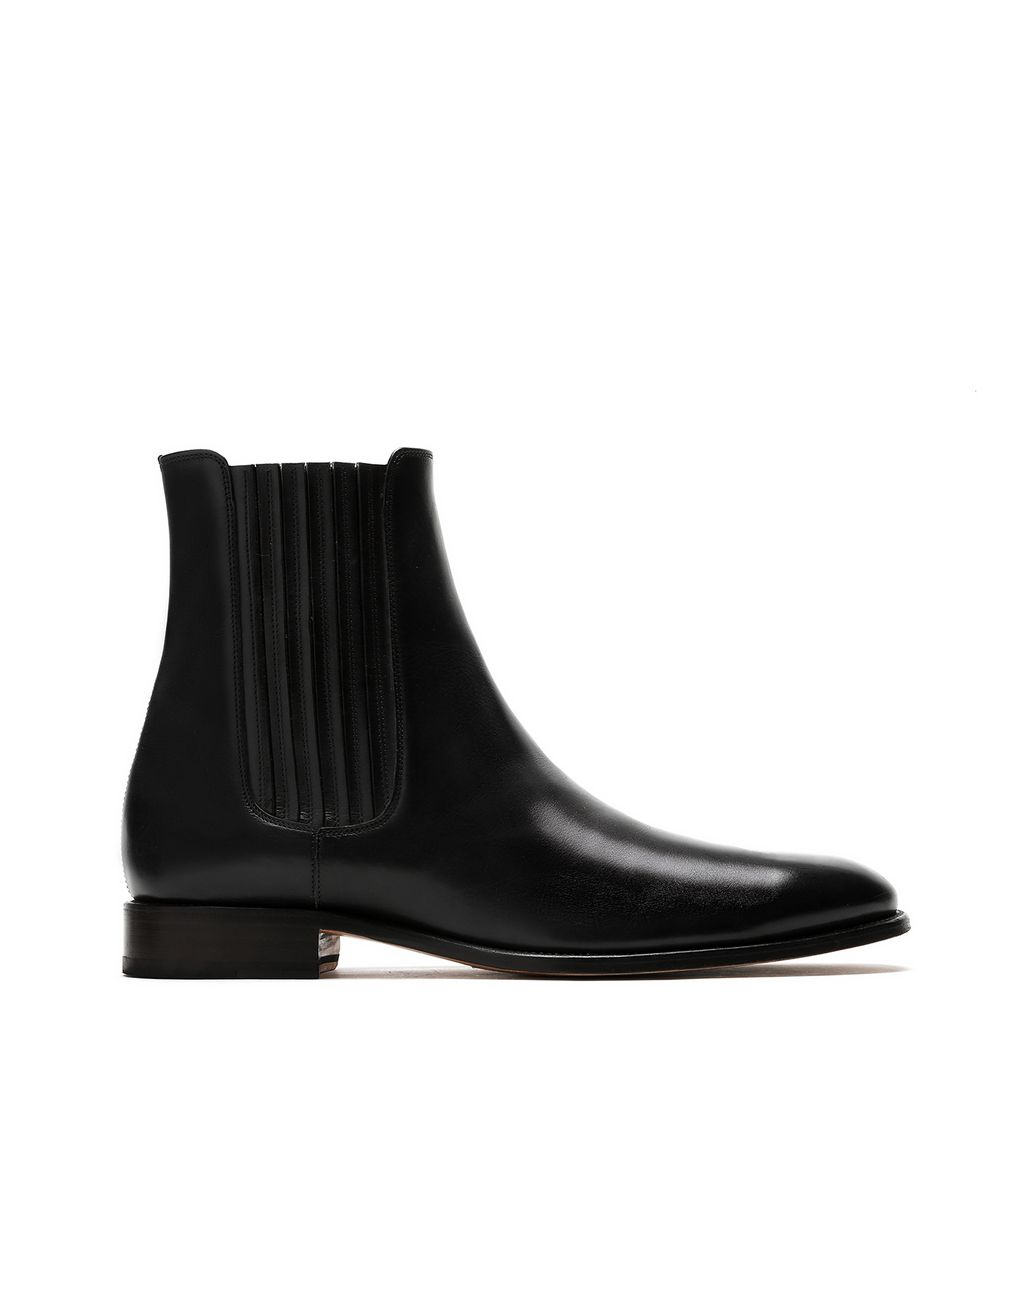 BRIONI Bottine Chelsea noire Chaussures ville [*** pickupInStoreShippingNotGuaranteed_info ***] f